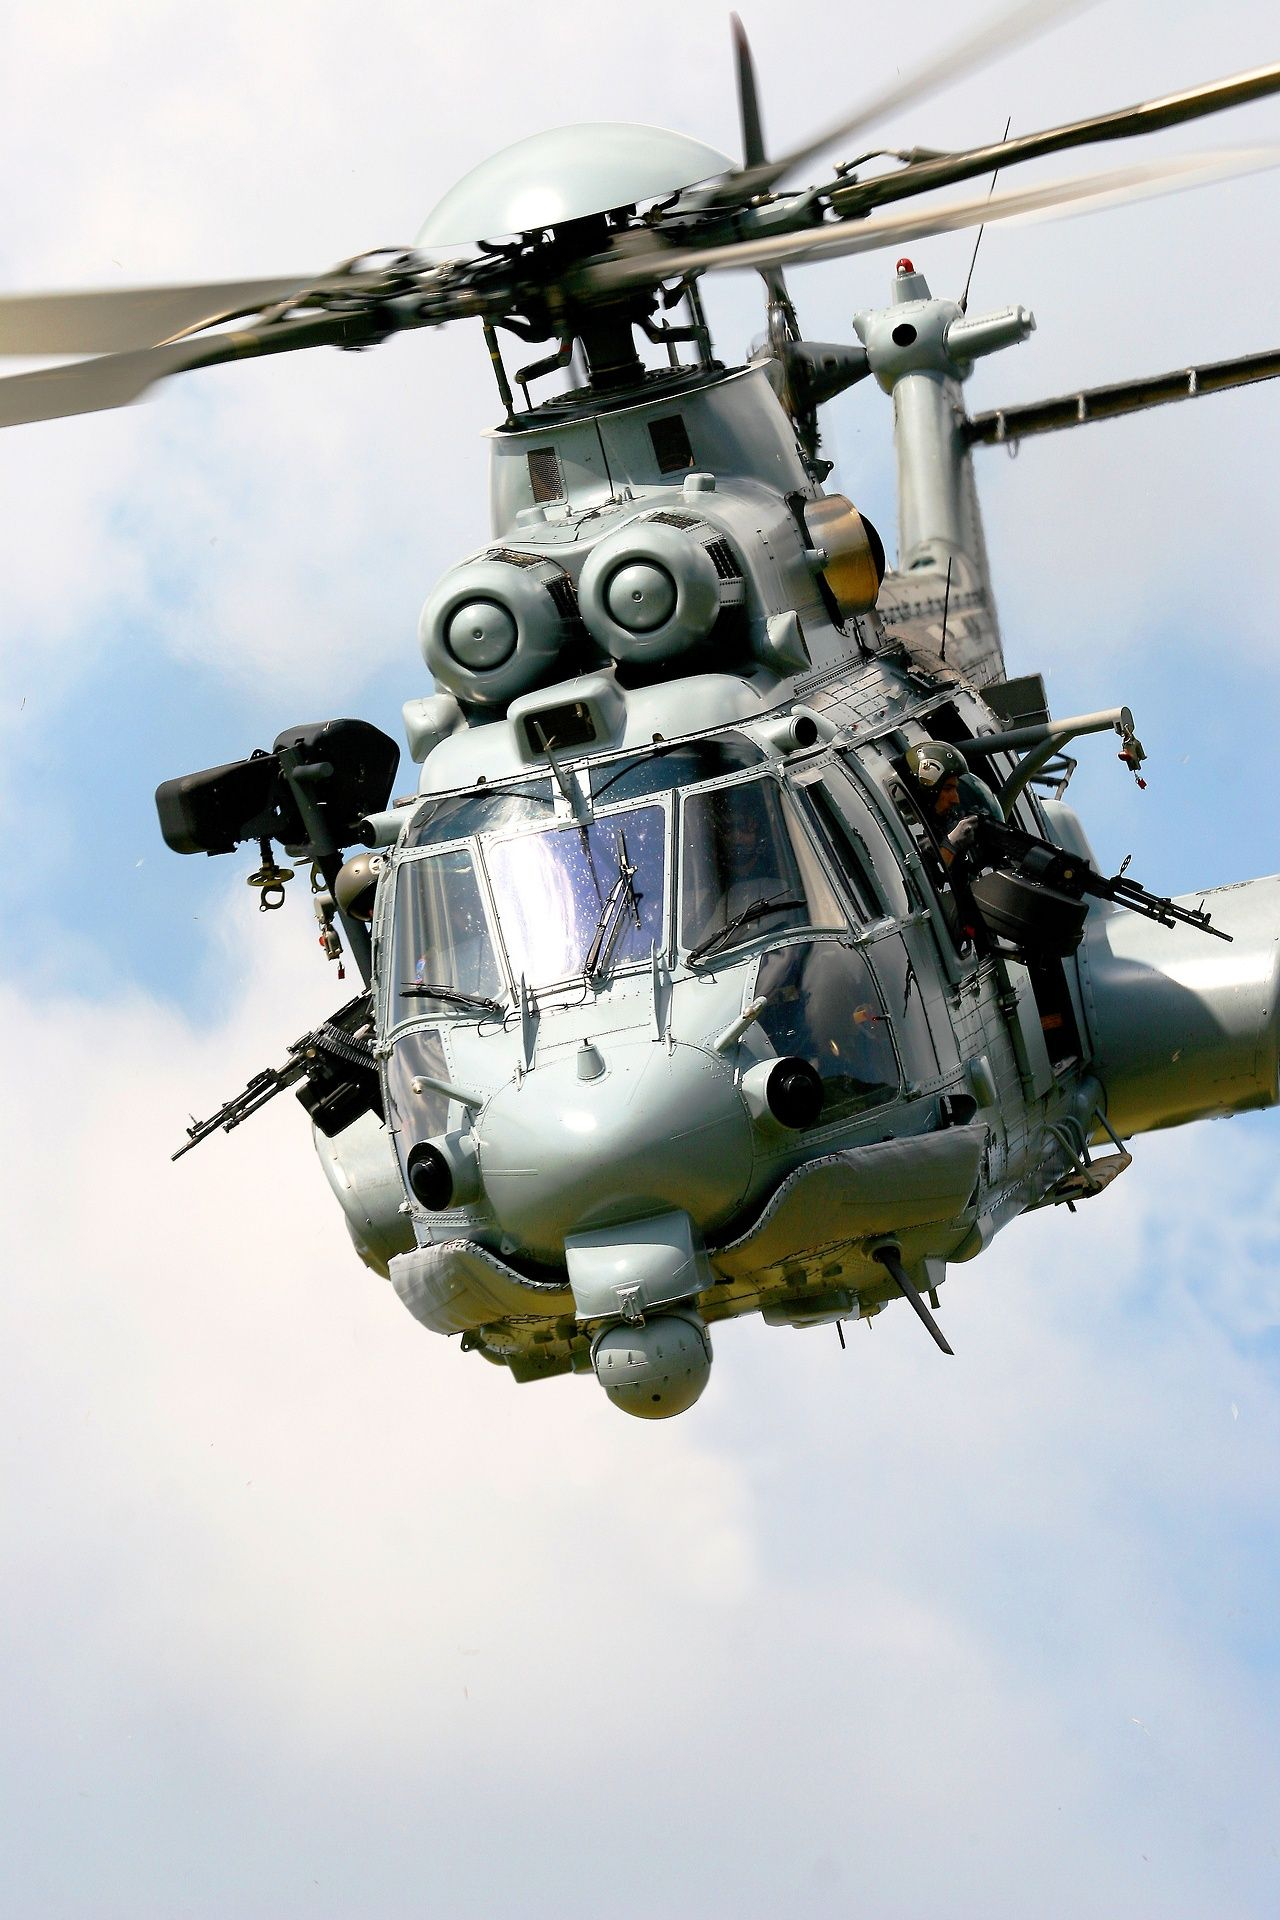 The Sikorsky MH-53 Pave Low series is a long-range combat search and rescue helicopter for the United States Air Force. The series was upgraded from the HH-53B/C, variants of the Sikorsky CH-53 Sea Stallion.